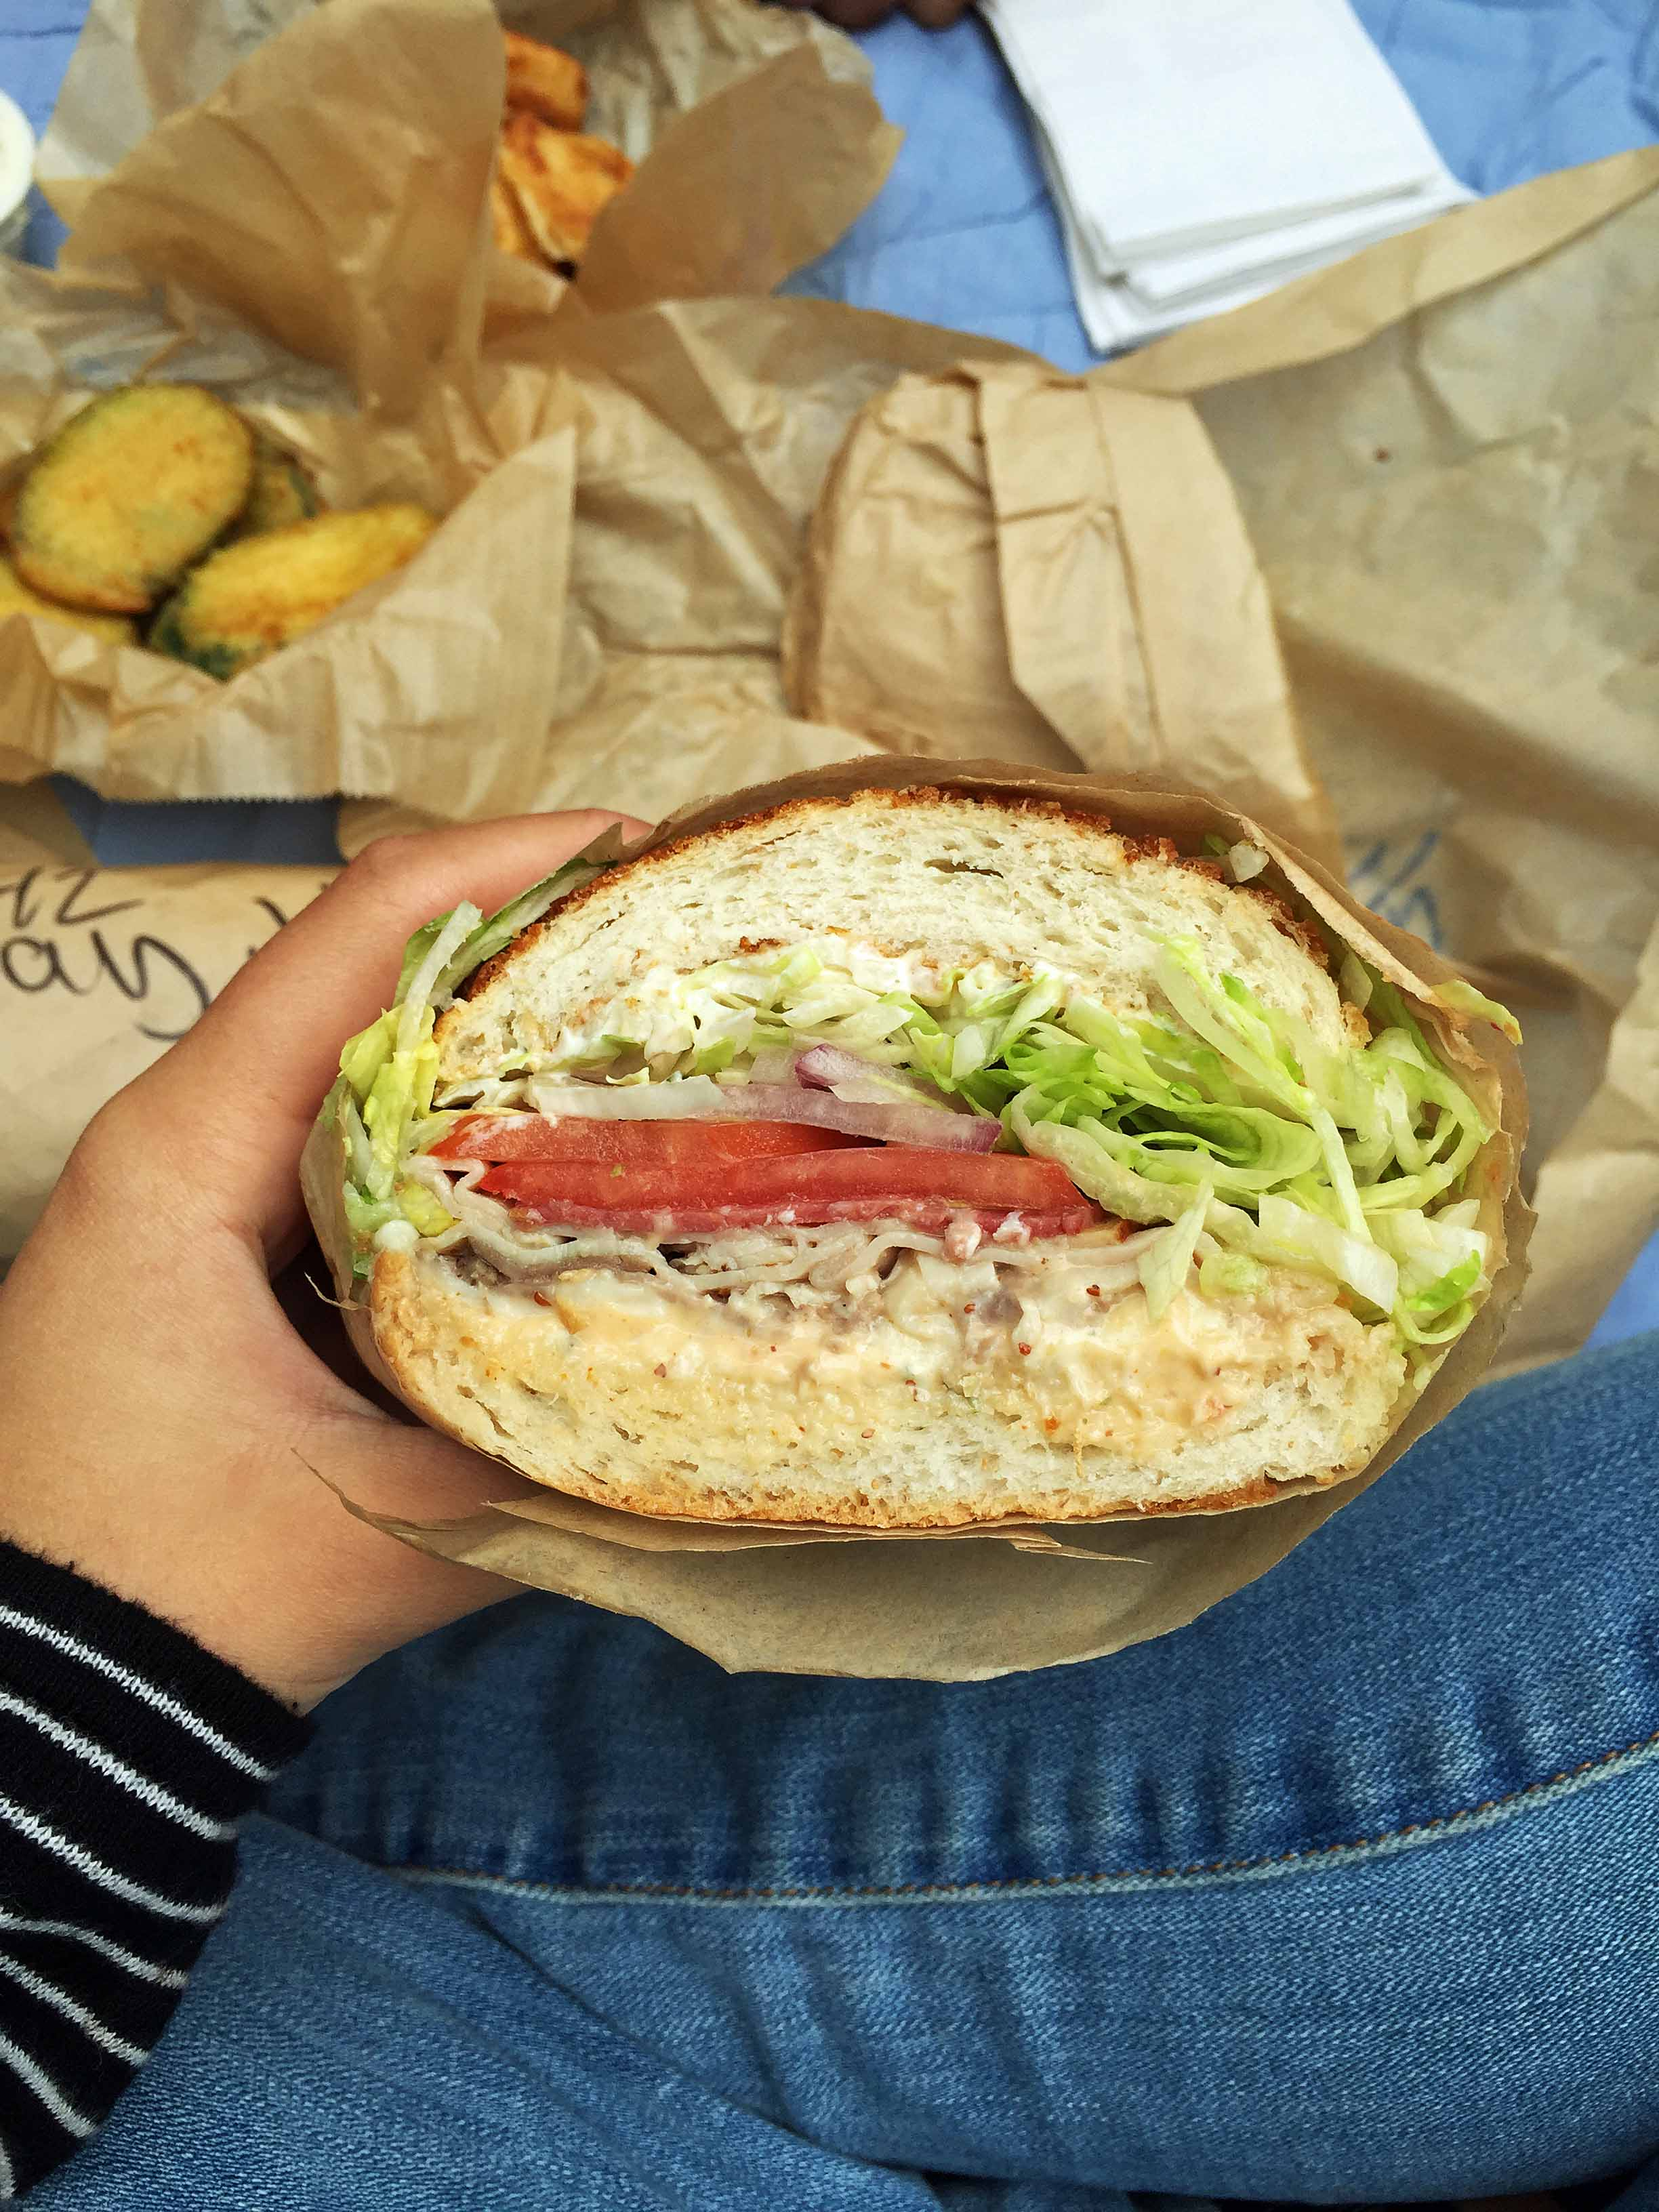 California pacific coast highway 1 road trip guide modern honey ike sandwiches best food on pacific coast highway road trip nvjuhfo Choice Image